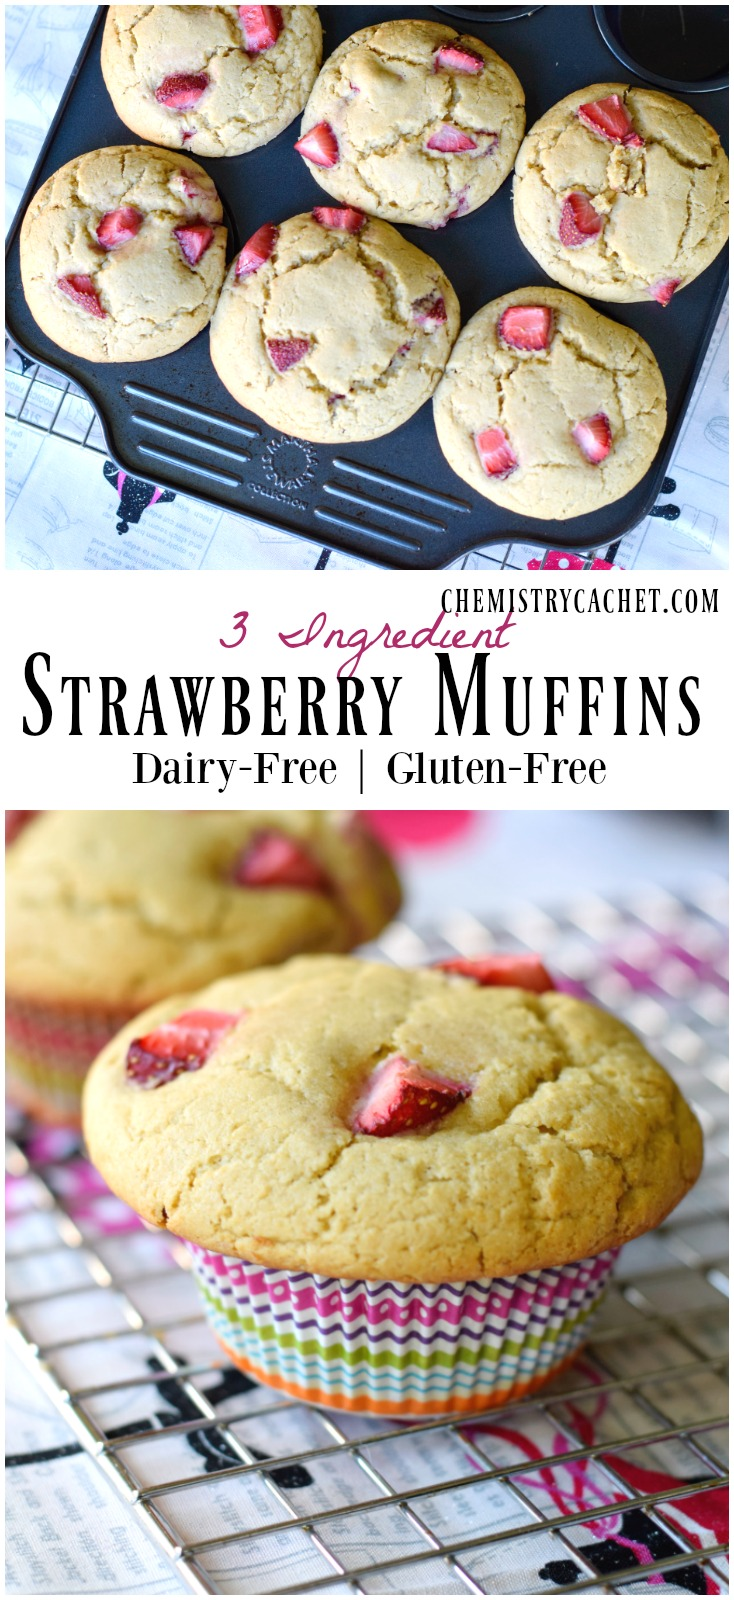 3 ingredient strawberry muffins that are totally allergy friendly! All with @enjoylifefoods muffin mix! Full details on chemistrycachet.com